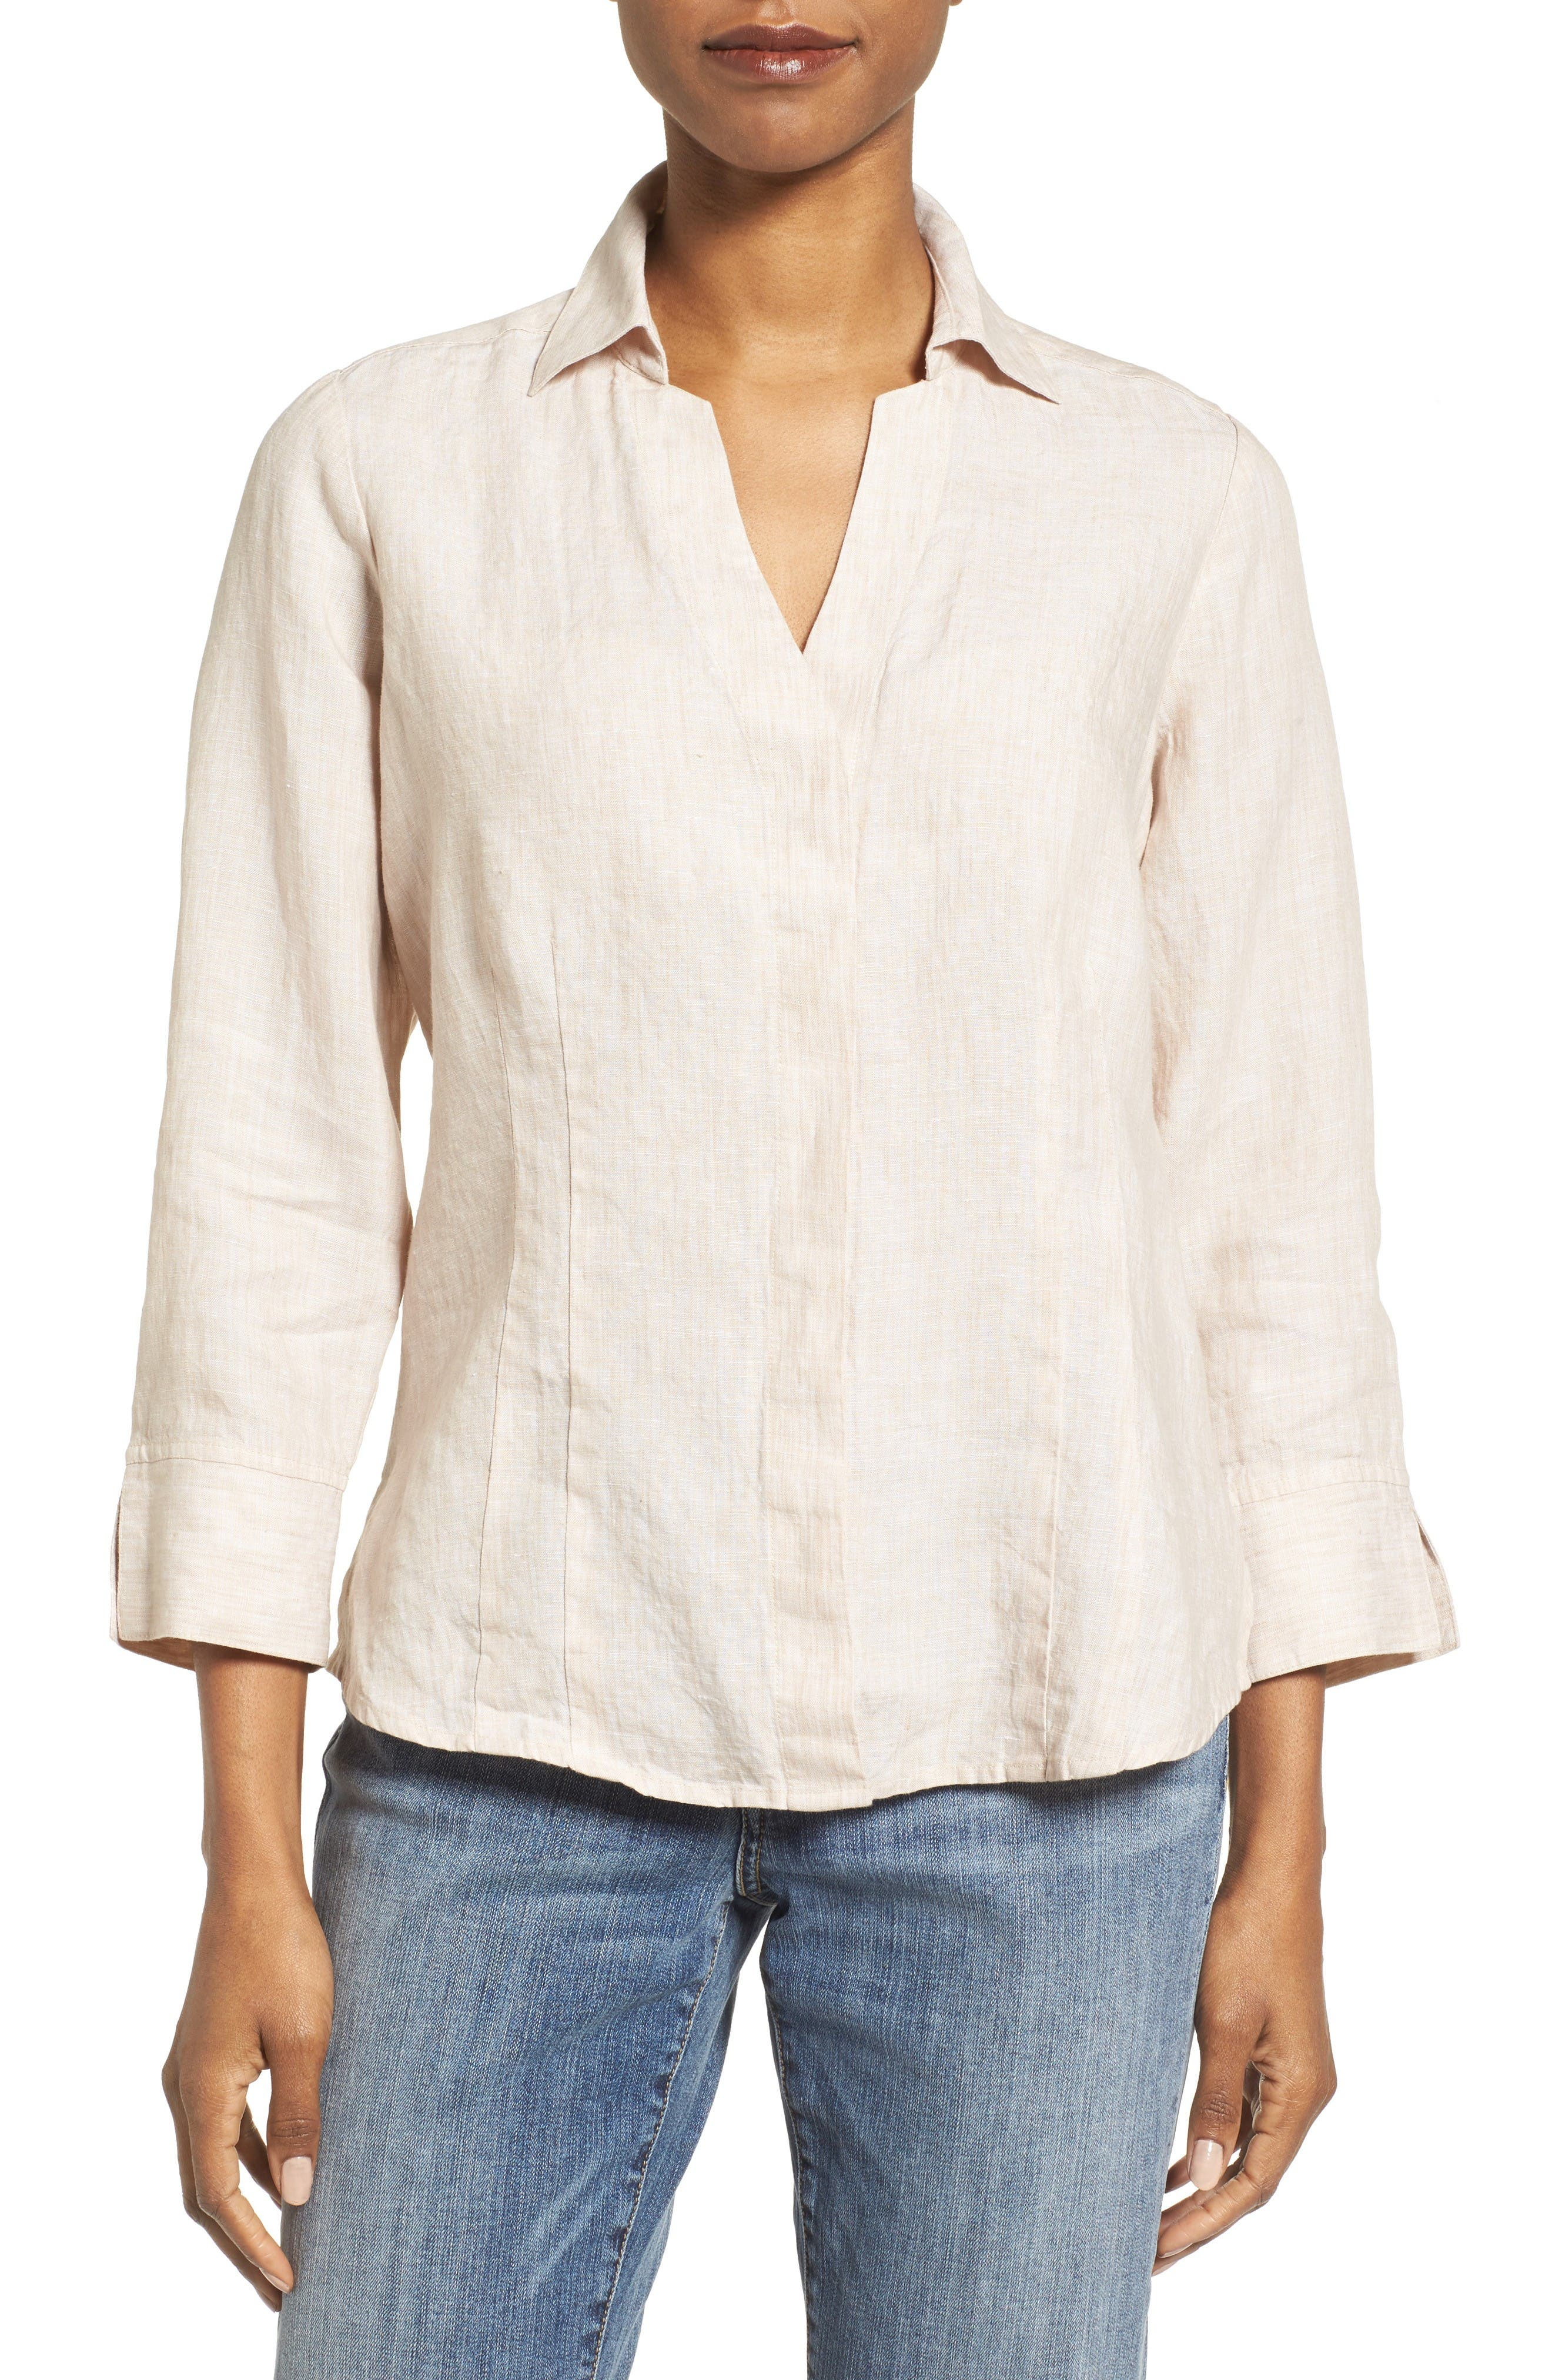 Foxcroft Linen Chambray Shirt (Regular & Petites)